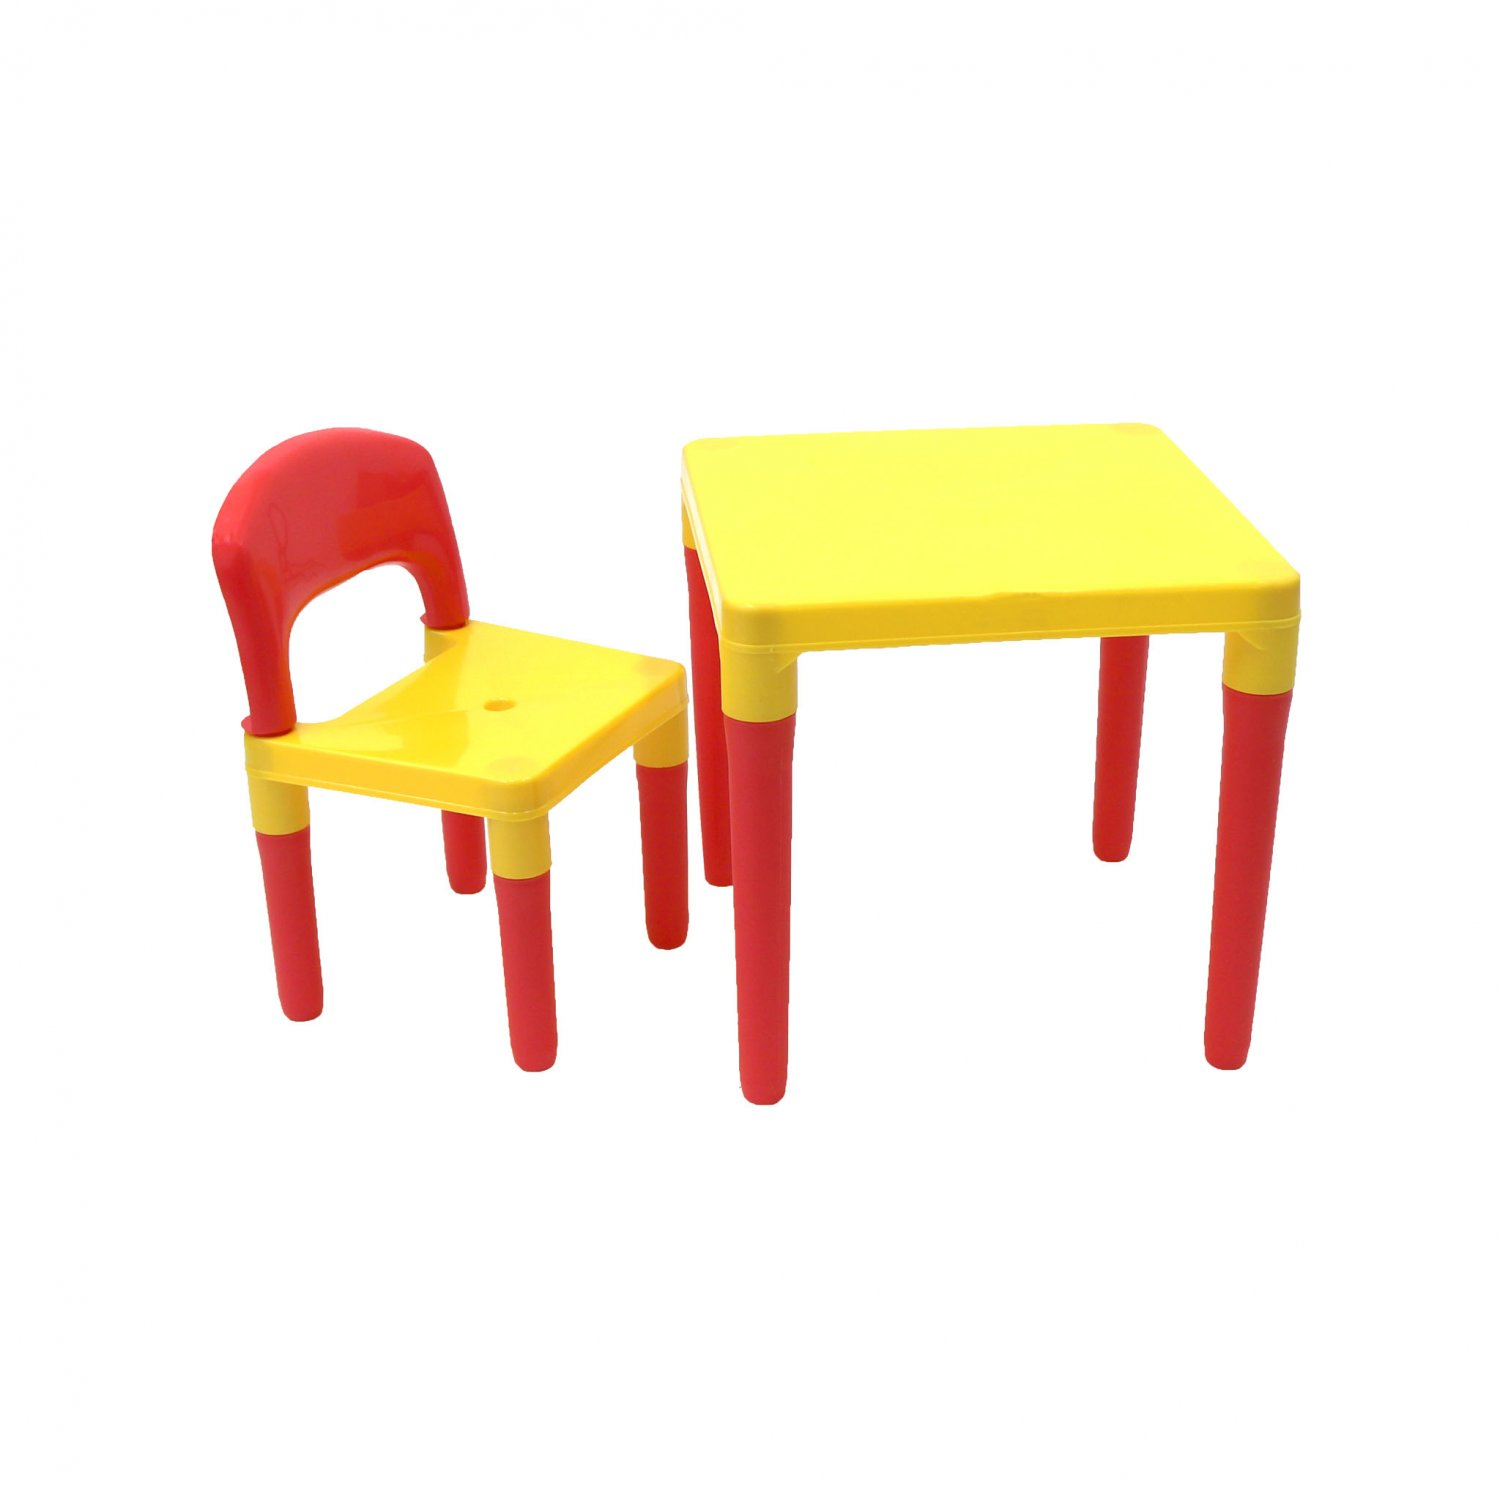 Kids Childrens Table Chair Furniture Set Bedroom Playroom Oypla Stocking The Very